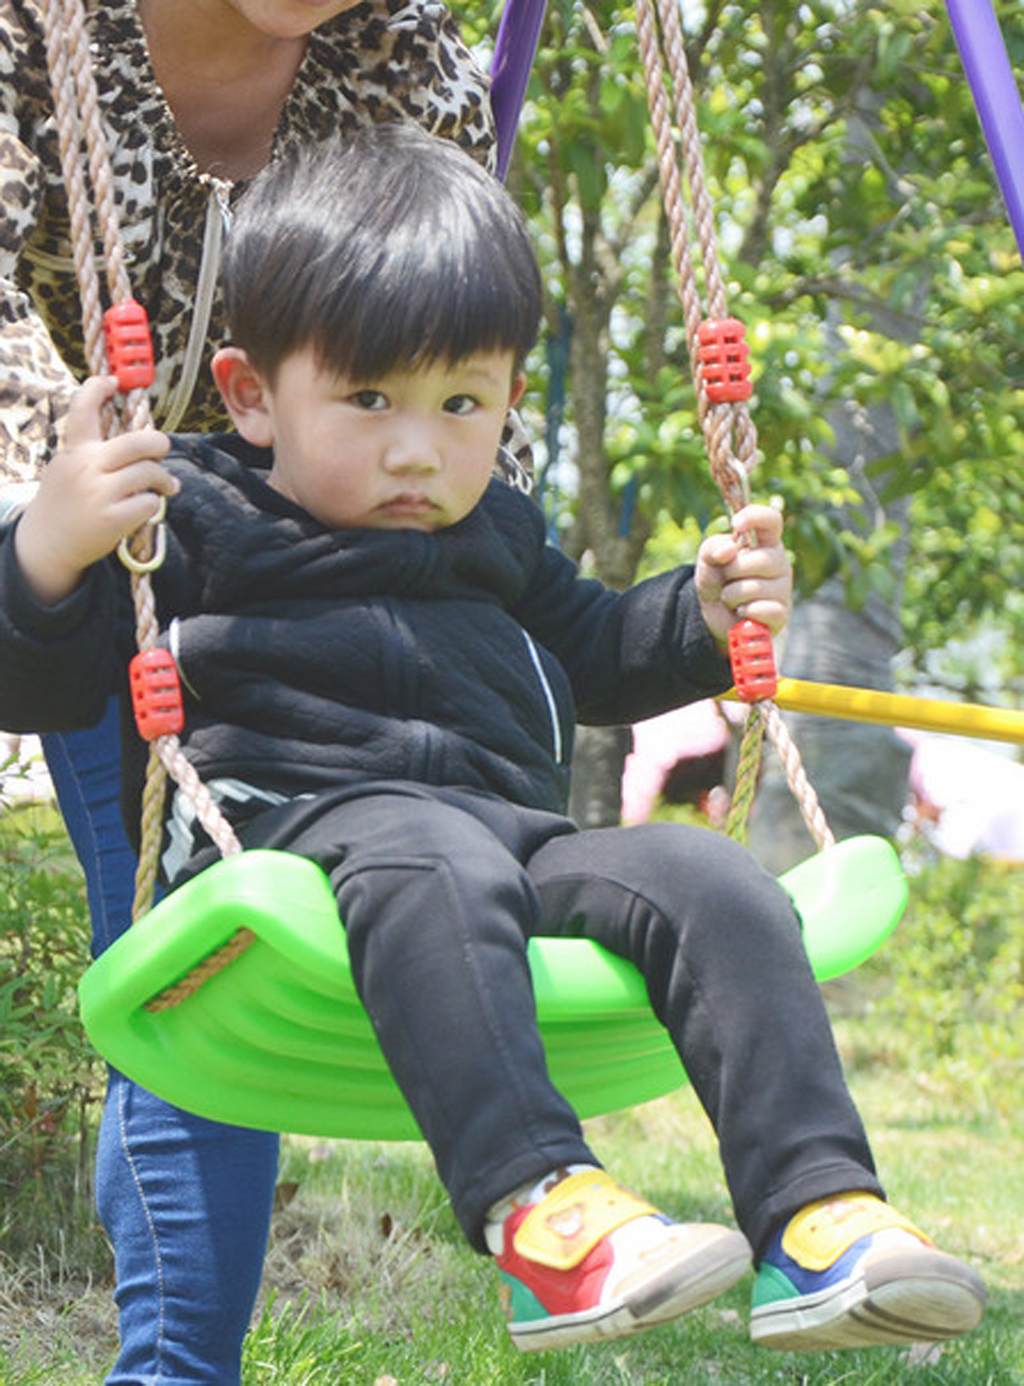 Garden-Swing-Set-Seat-Rope-Strap-Connector-Chain-Kid-Adult-Outdoor-Fun-Play-Game miniatuur 14